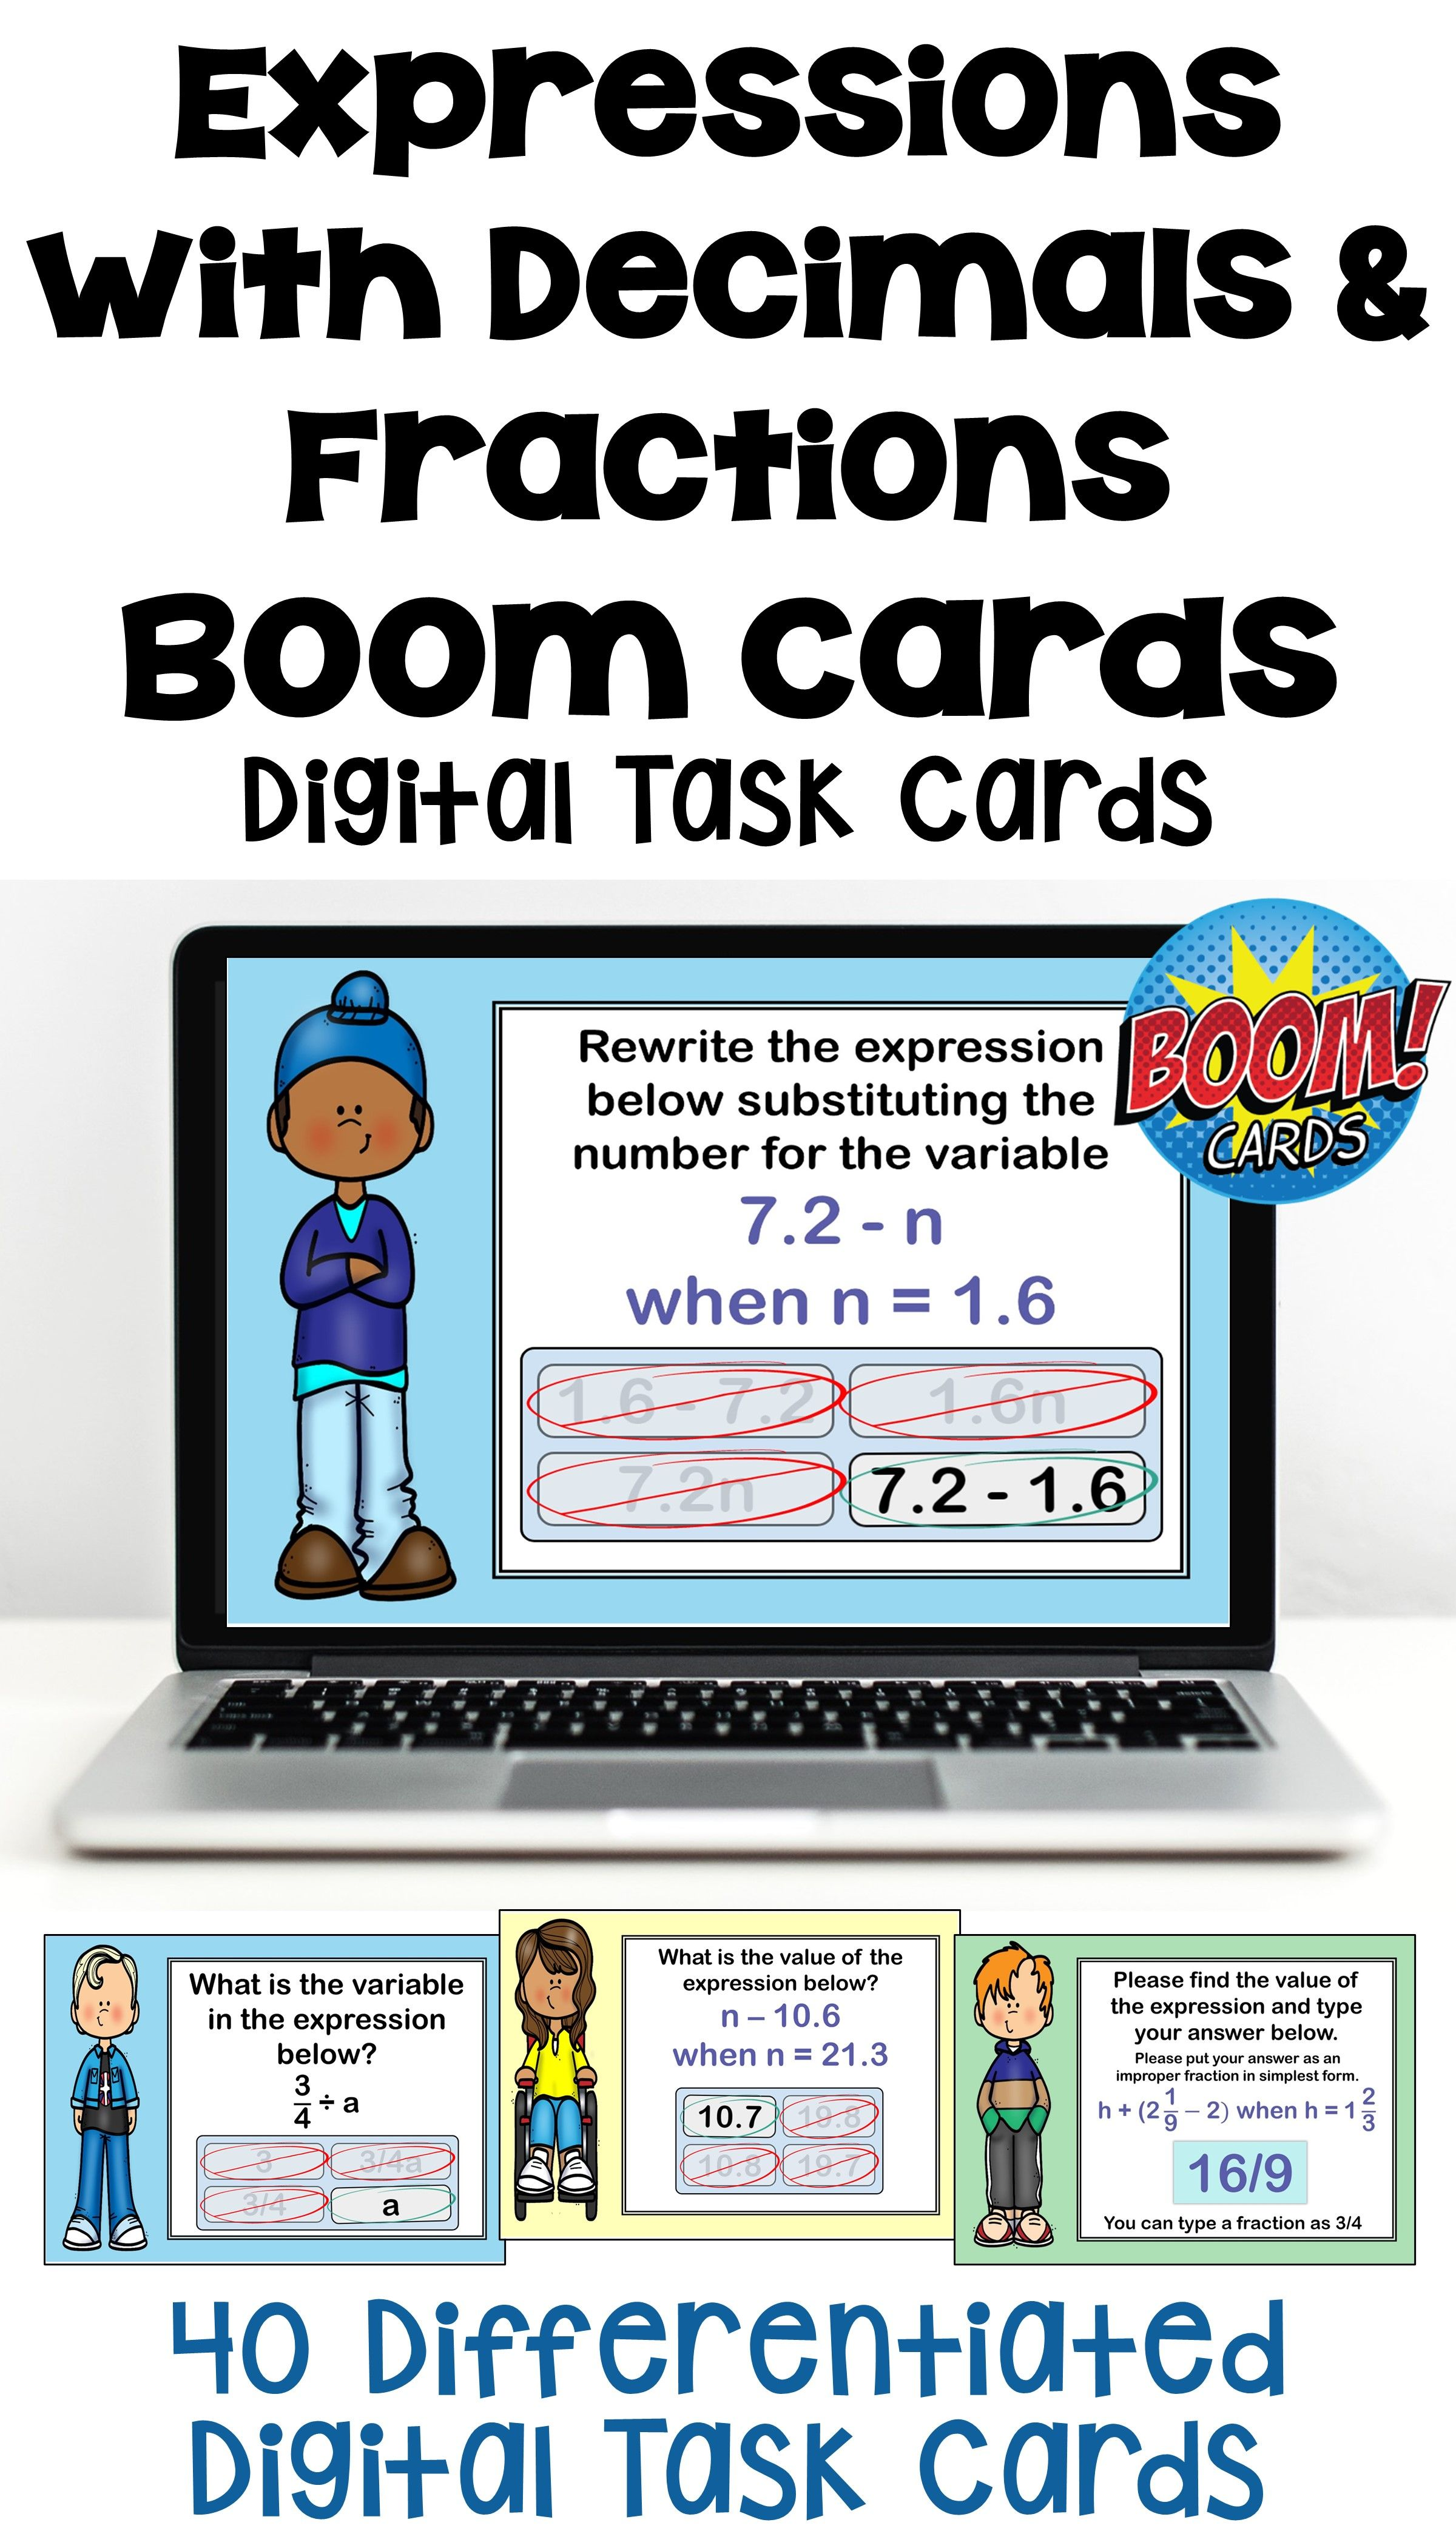 Expressions With Decimals And Fractions Boom Cards Digital Task Cards One Step Equations Digital Task Cards Fractions